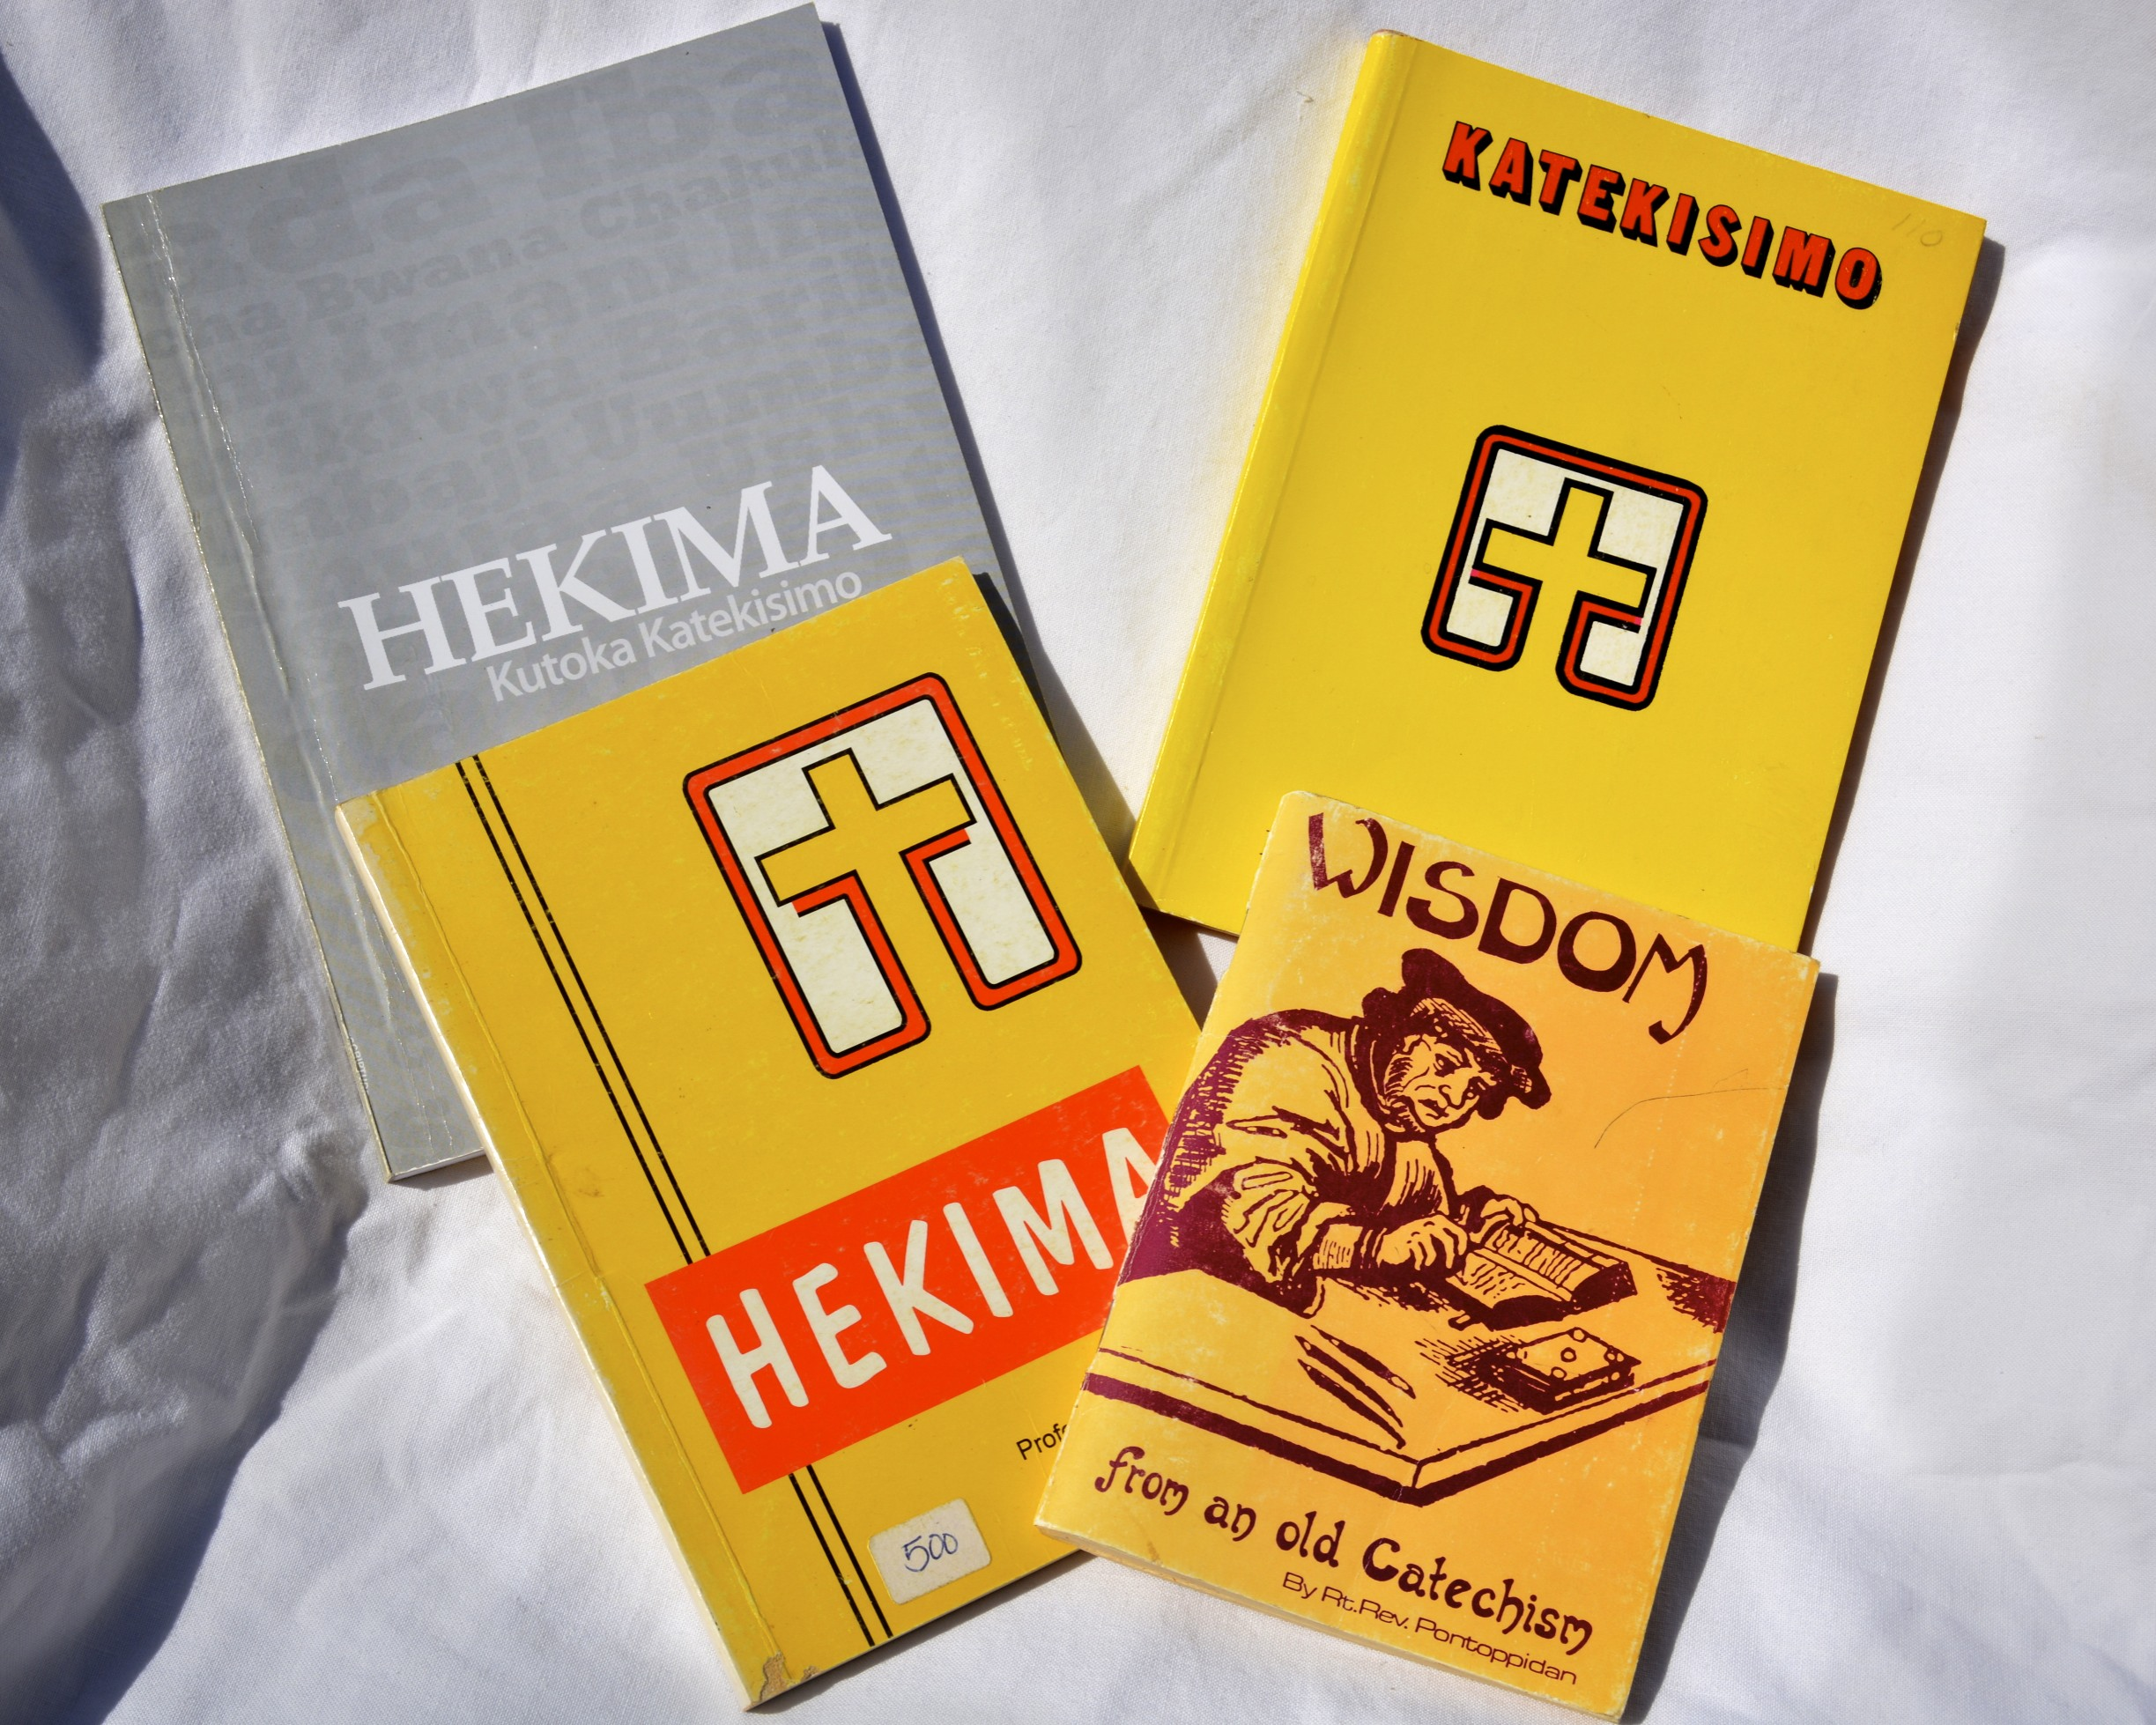 The different issues of Hekima and Wisdom.